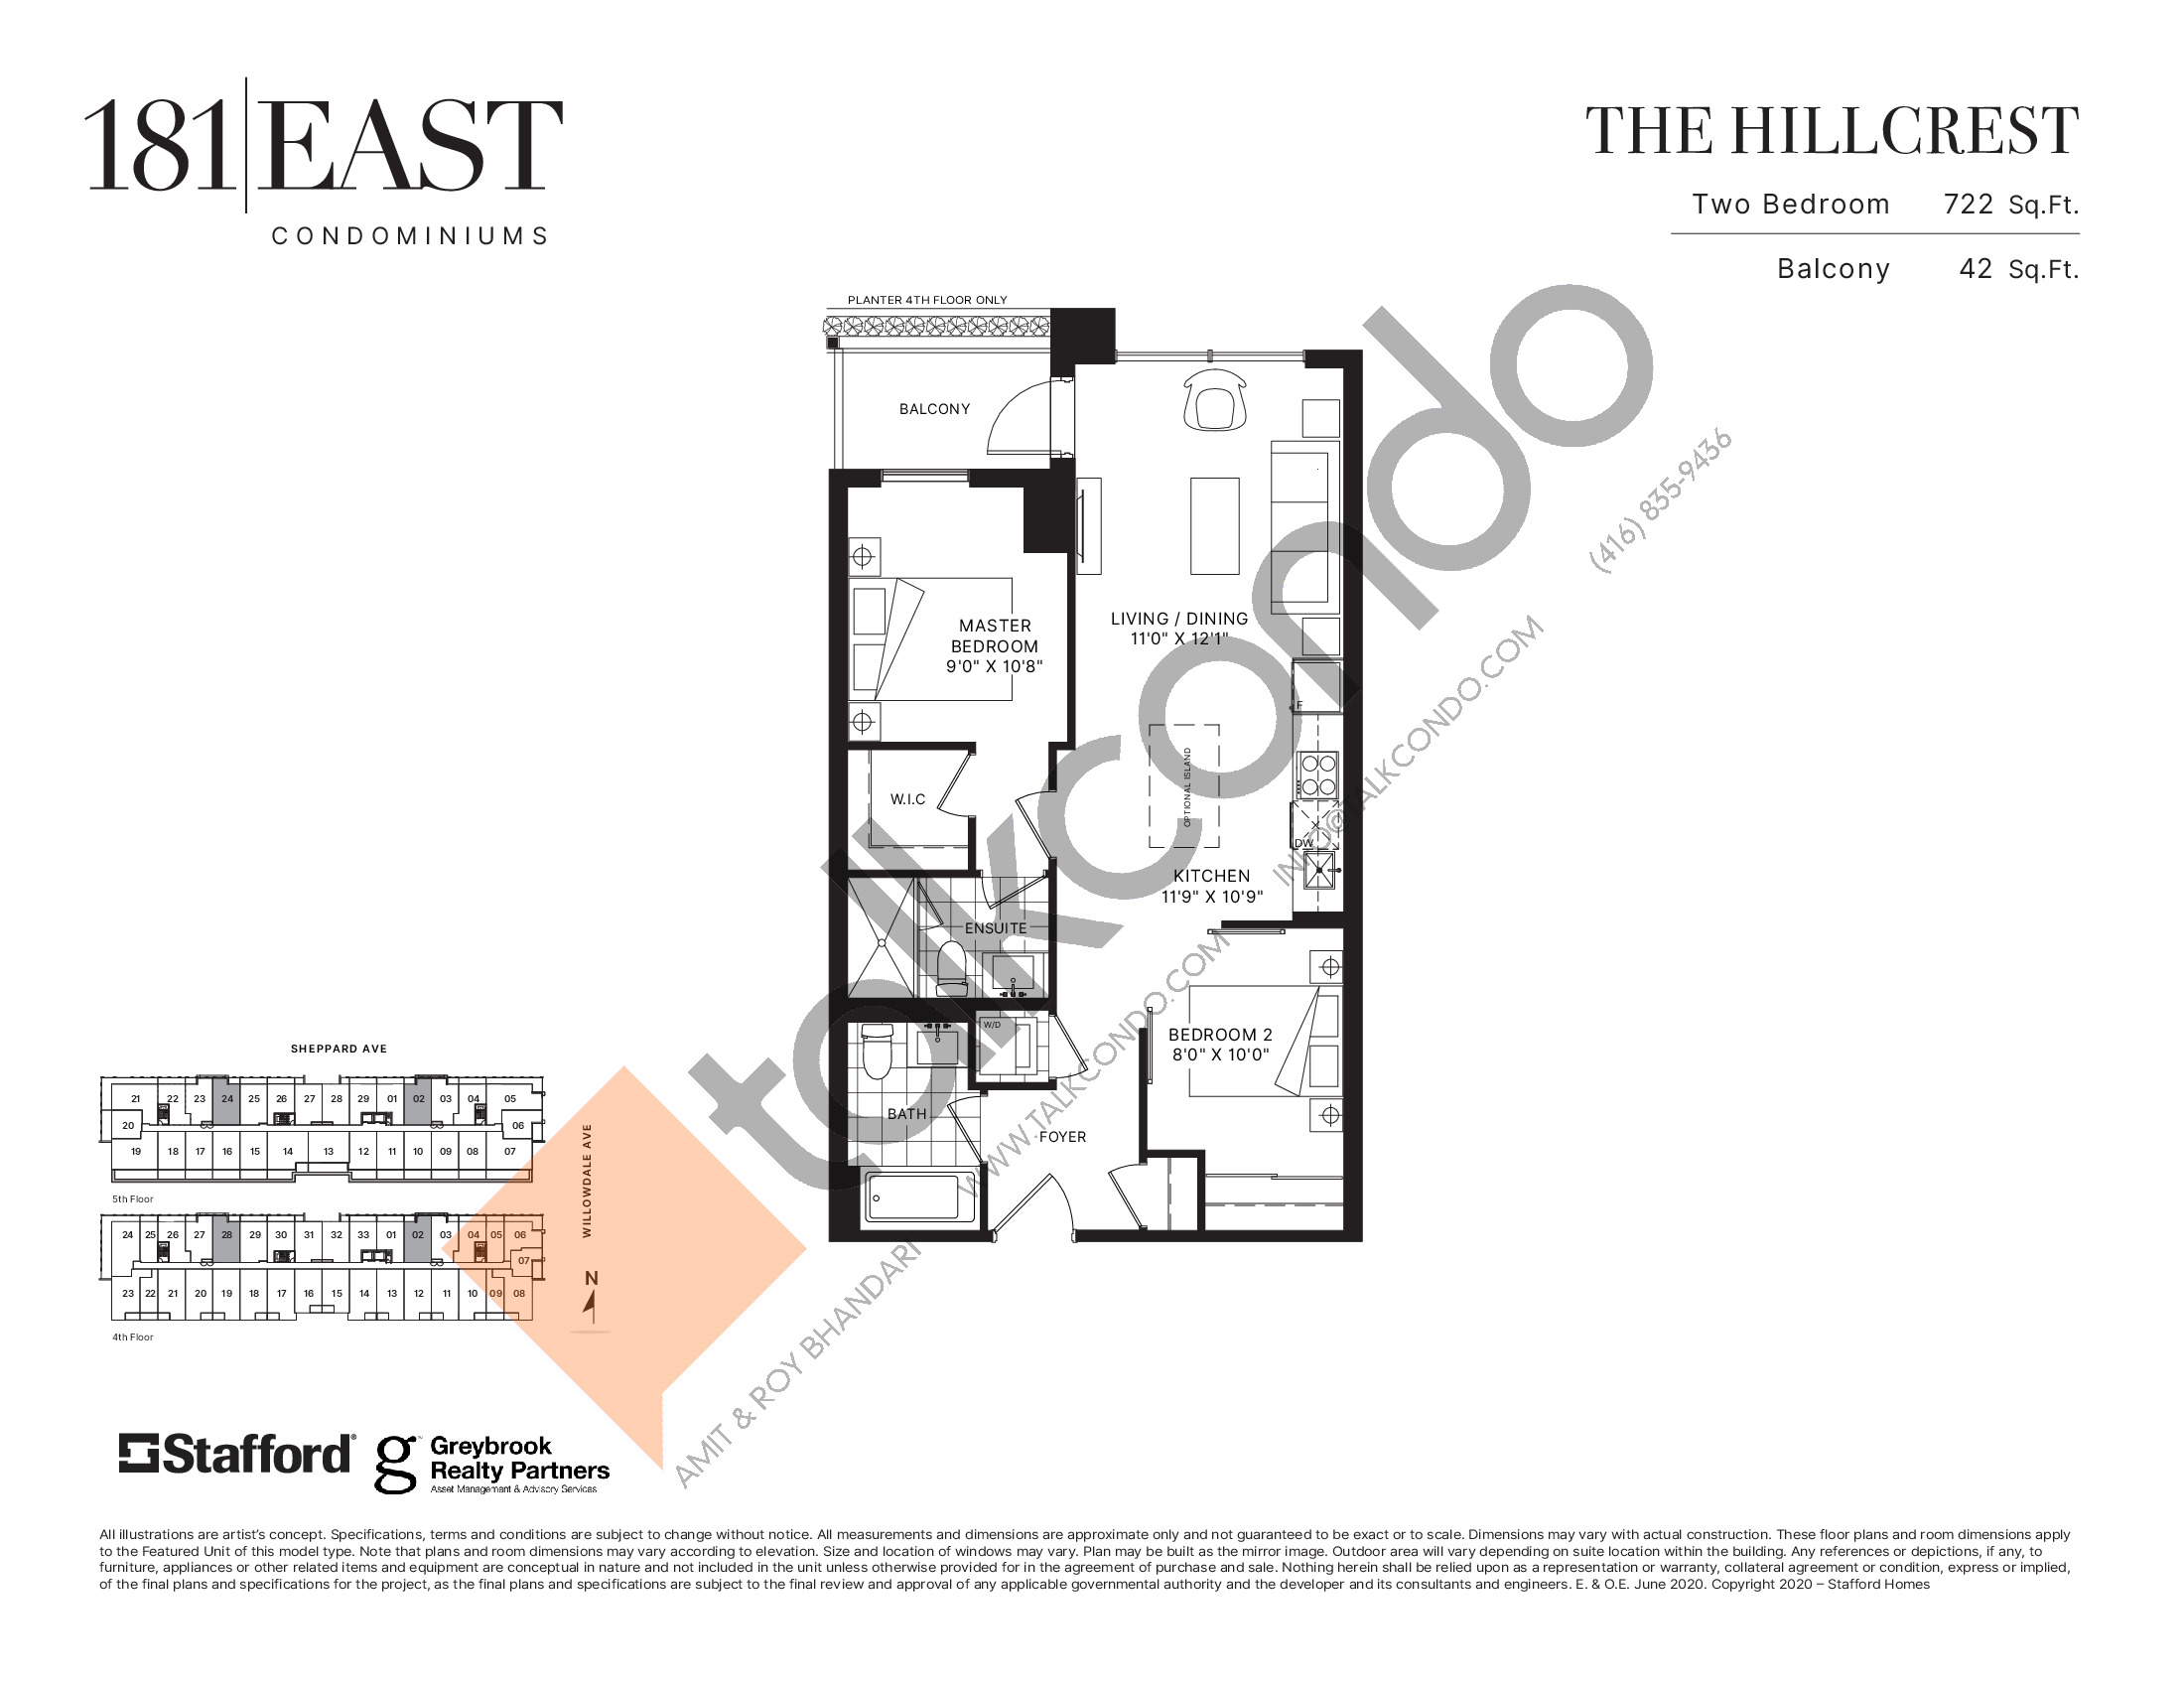 The Hillcrest Floor Plan at 181 East Condos - 722 sq.ft